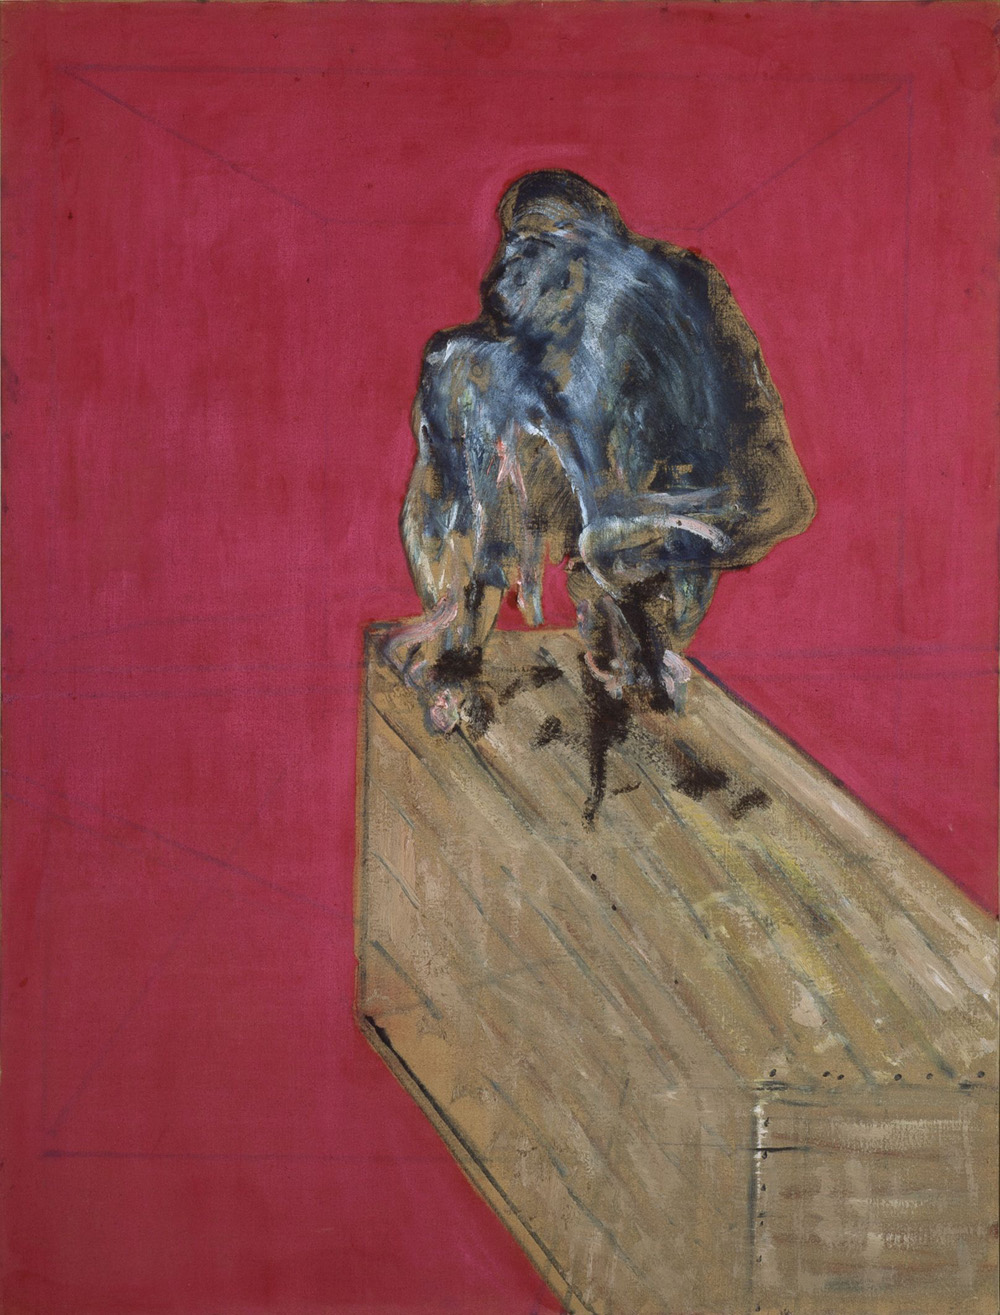 Francis Bacon Studio per scimpanzè / Study for Chimpanzee Marzo/march 1957 Peggy Guggenheim Collection, Venezia © The Estate of Francis Bacon, by SIAE 2011